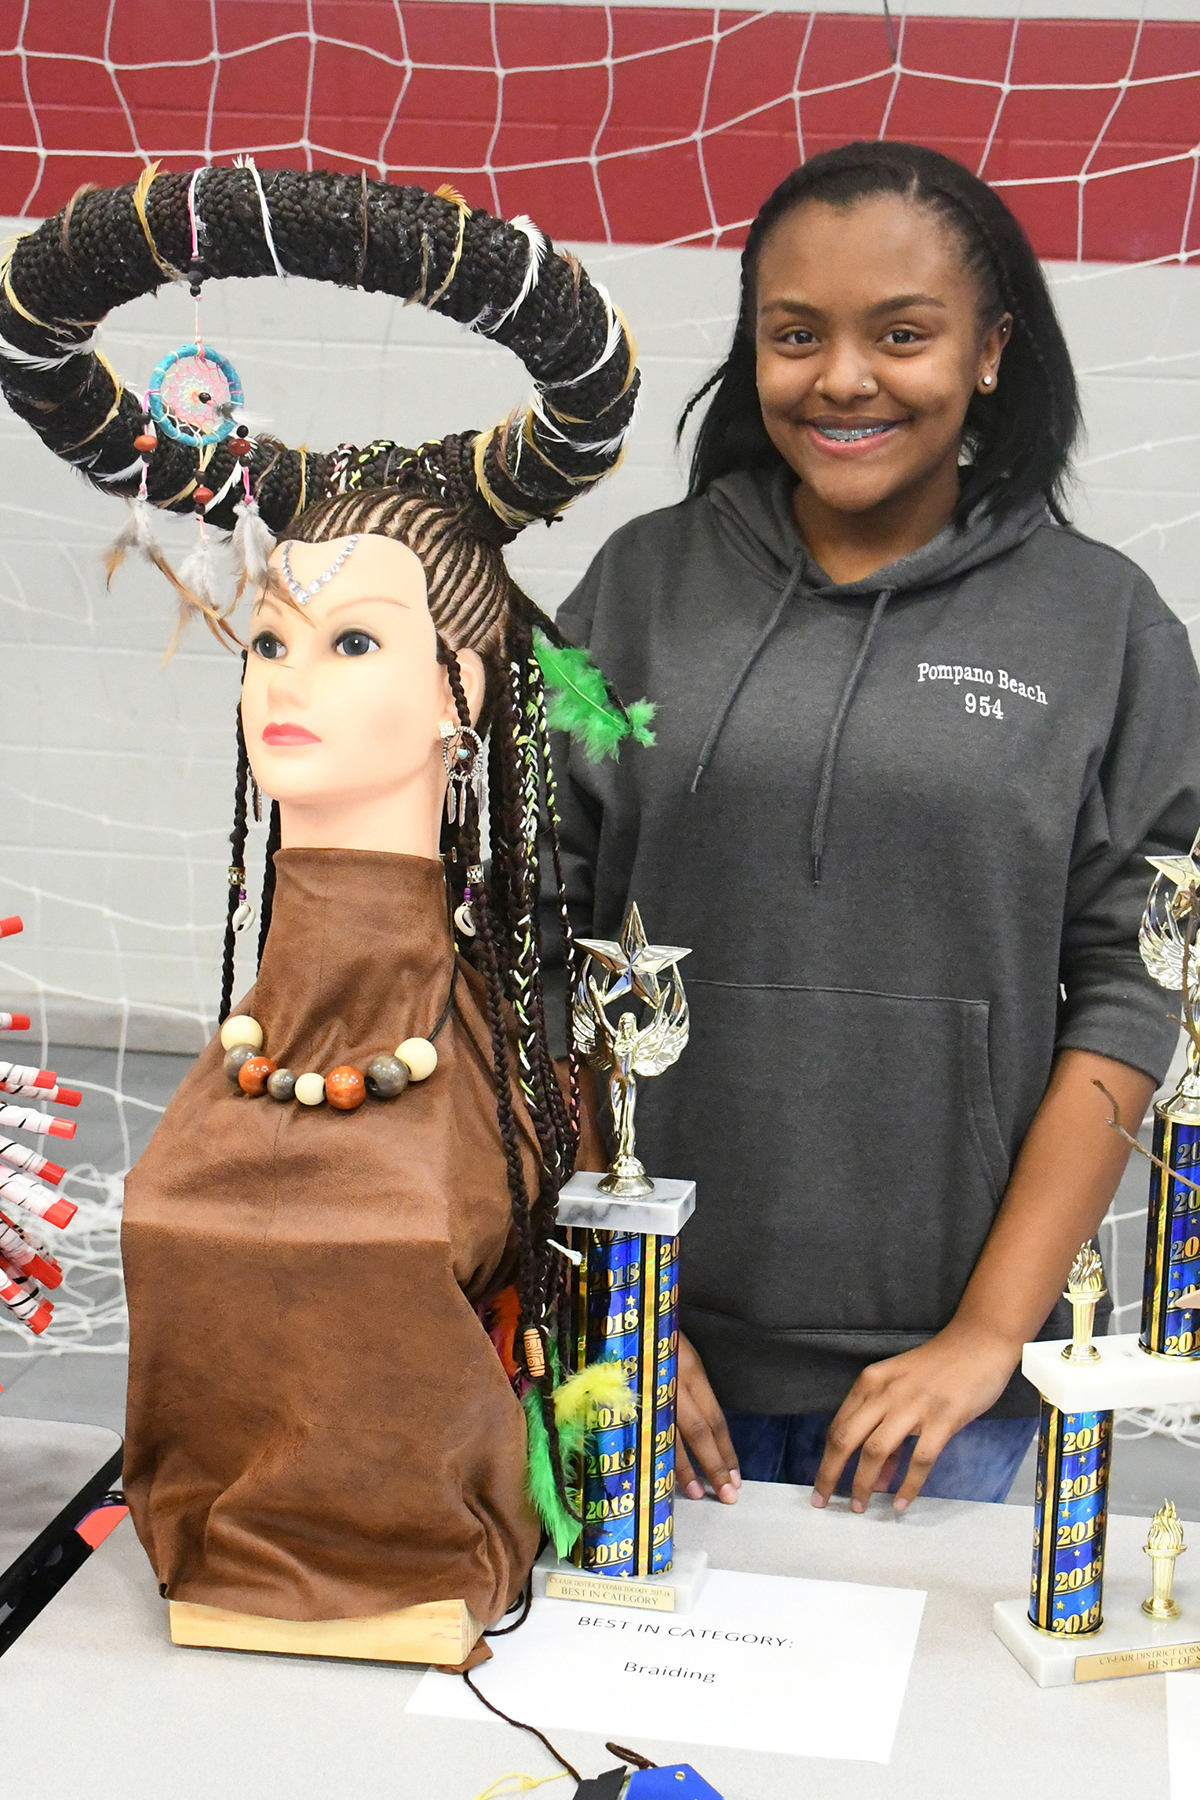 Cosmetology Offers Opportunities For High School Students